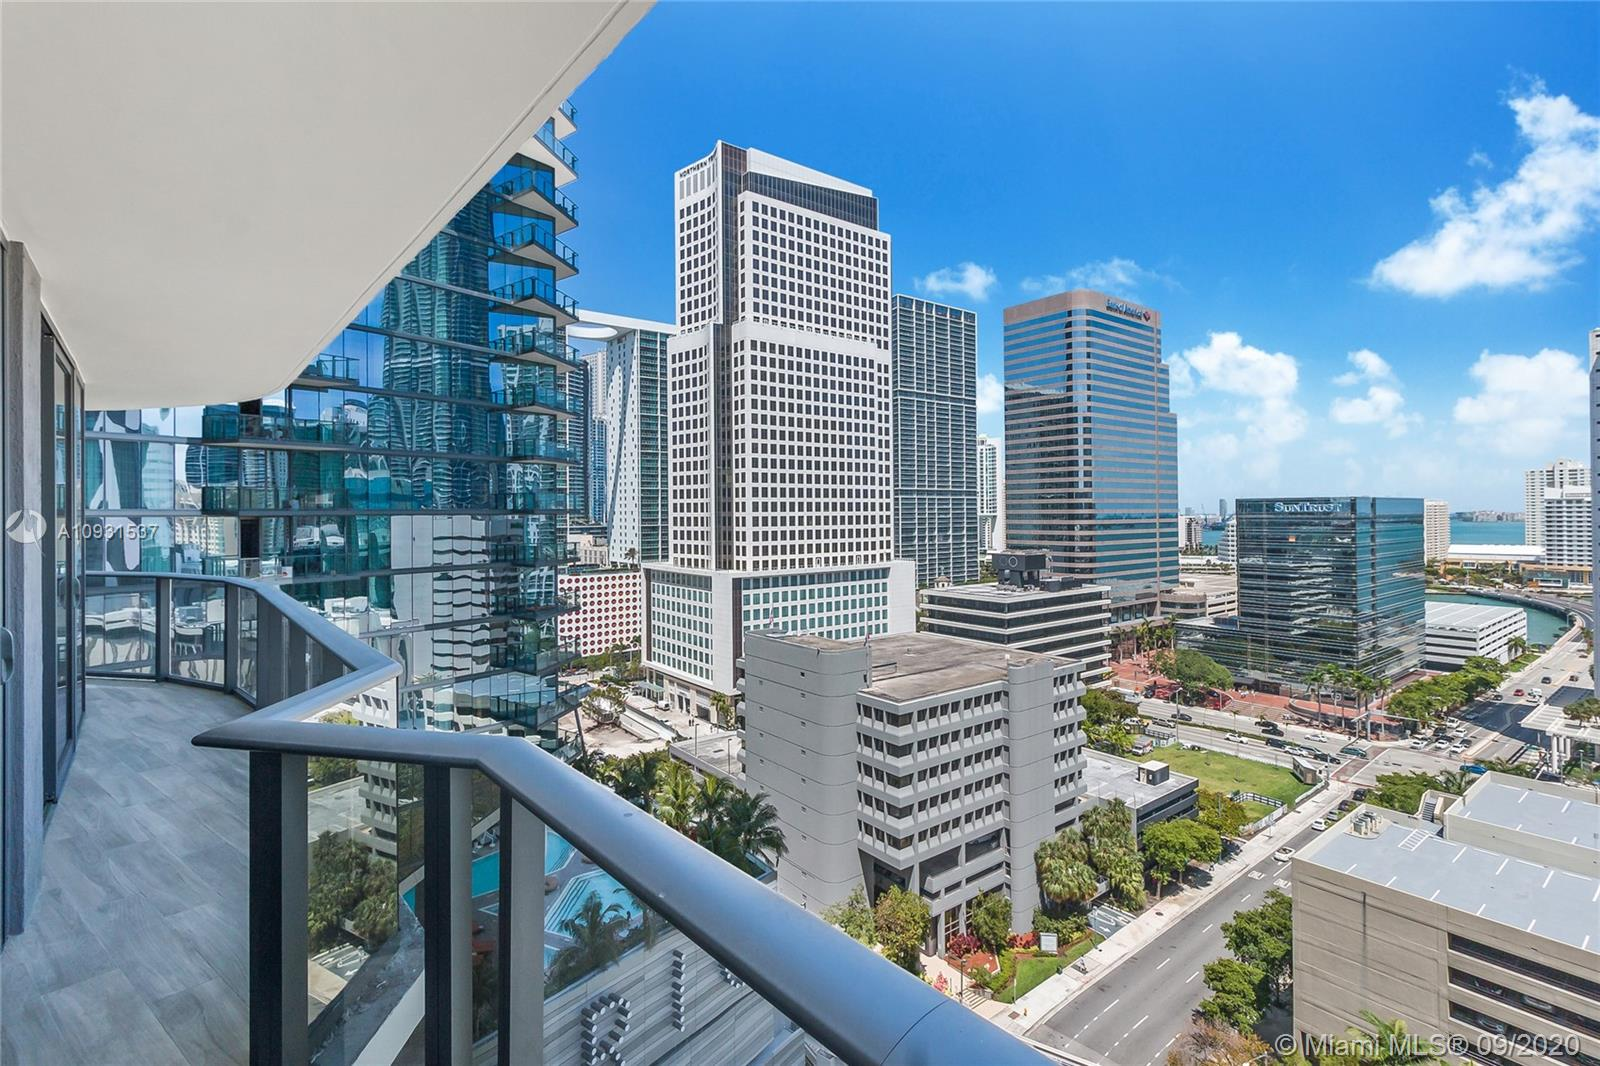 801 Miami Ave # 1605, Miami, Florida 33130, 2 Bedrooms Bedrooms, ,2 BathroomsBathrooms,Residential Lease,For Rent,801 Miami Ave # 1605,A10931537